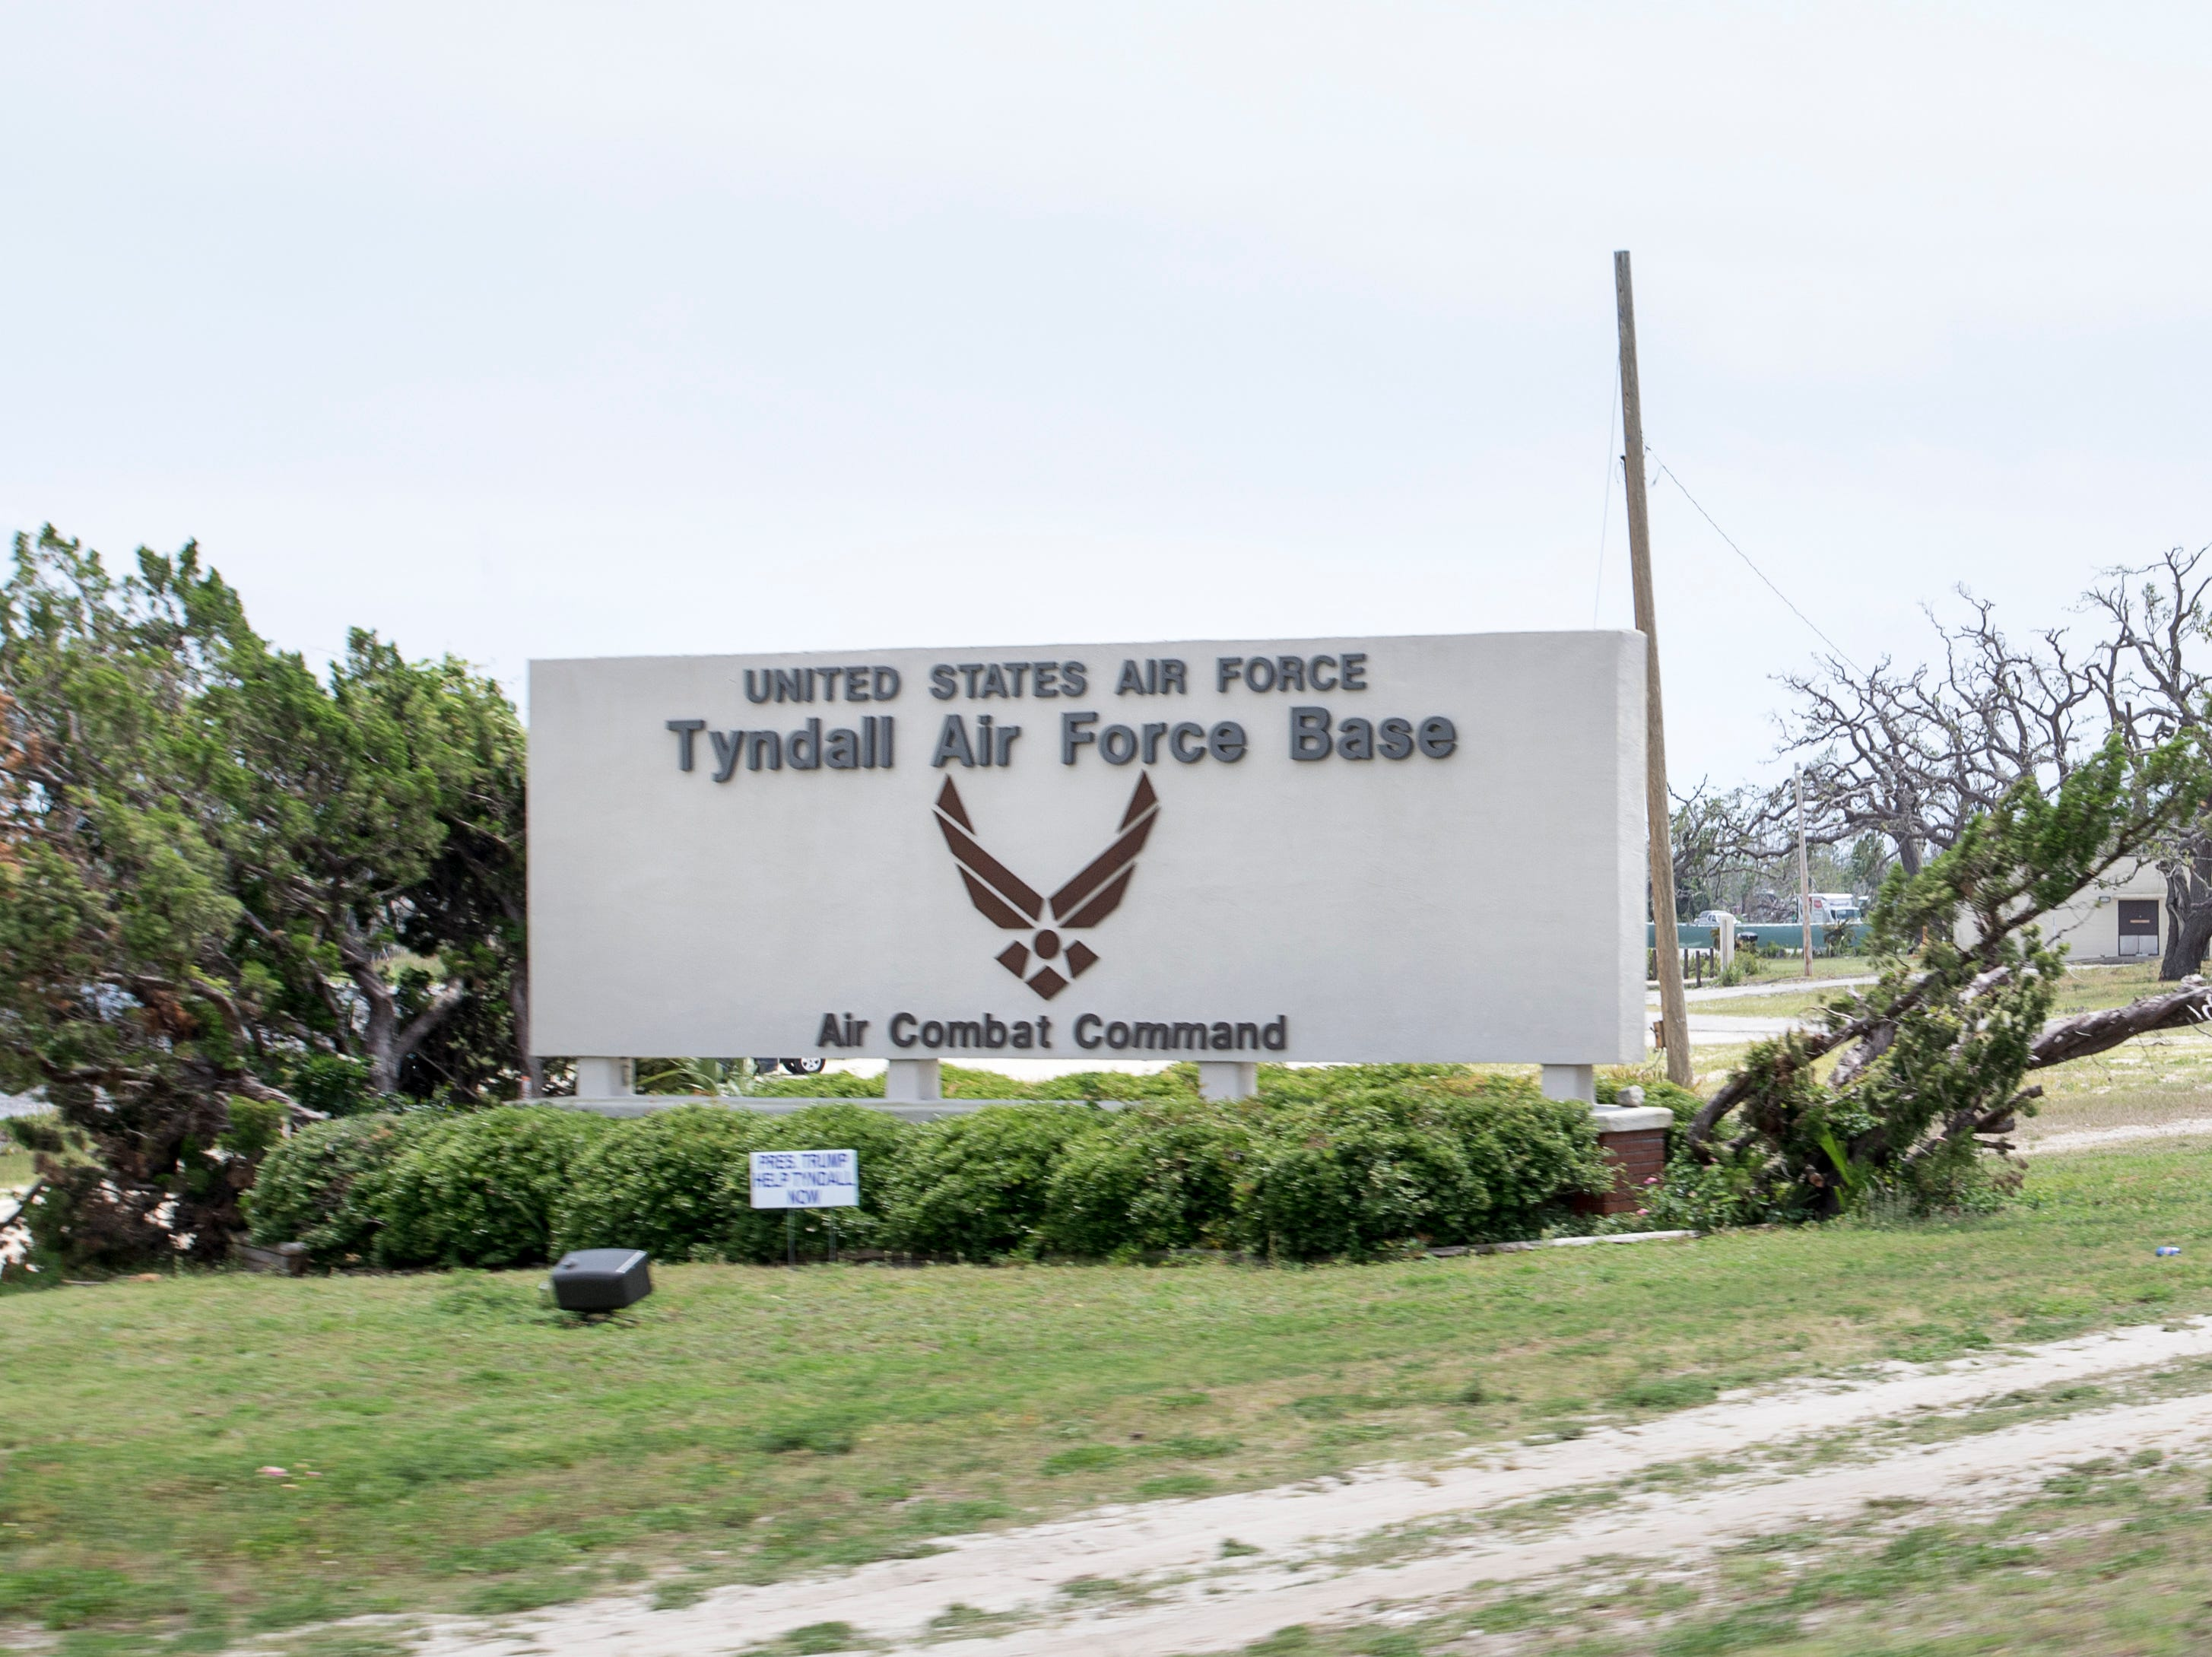 Tyndall Air Force Base  in the Panama City area of Florida on Wednesday, May 8, 2019.  Michael made landfall as a Category 5 hurricane between Mexico Beach and Tyndall Air Force Base on October 10, 2018.